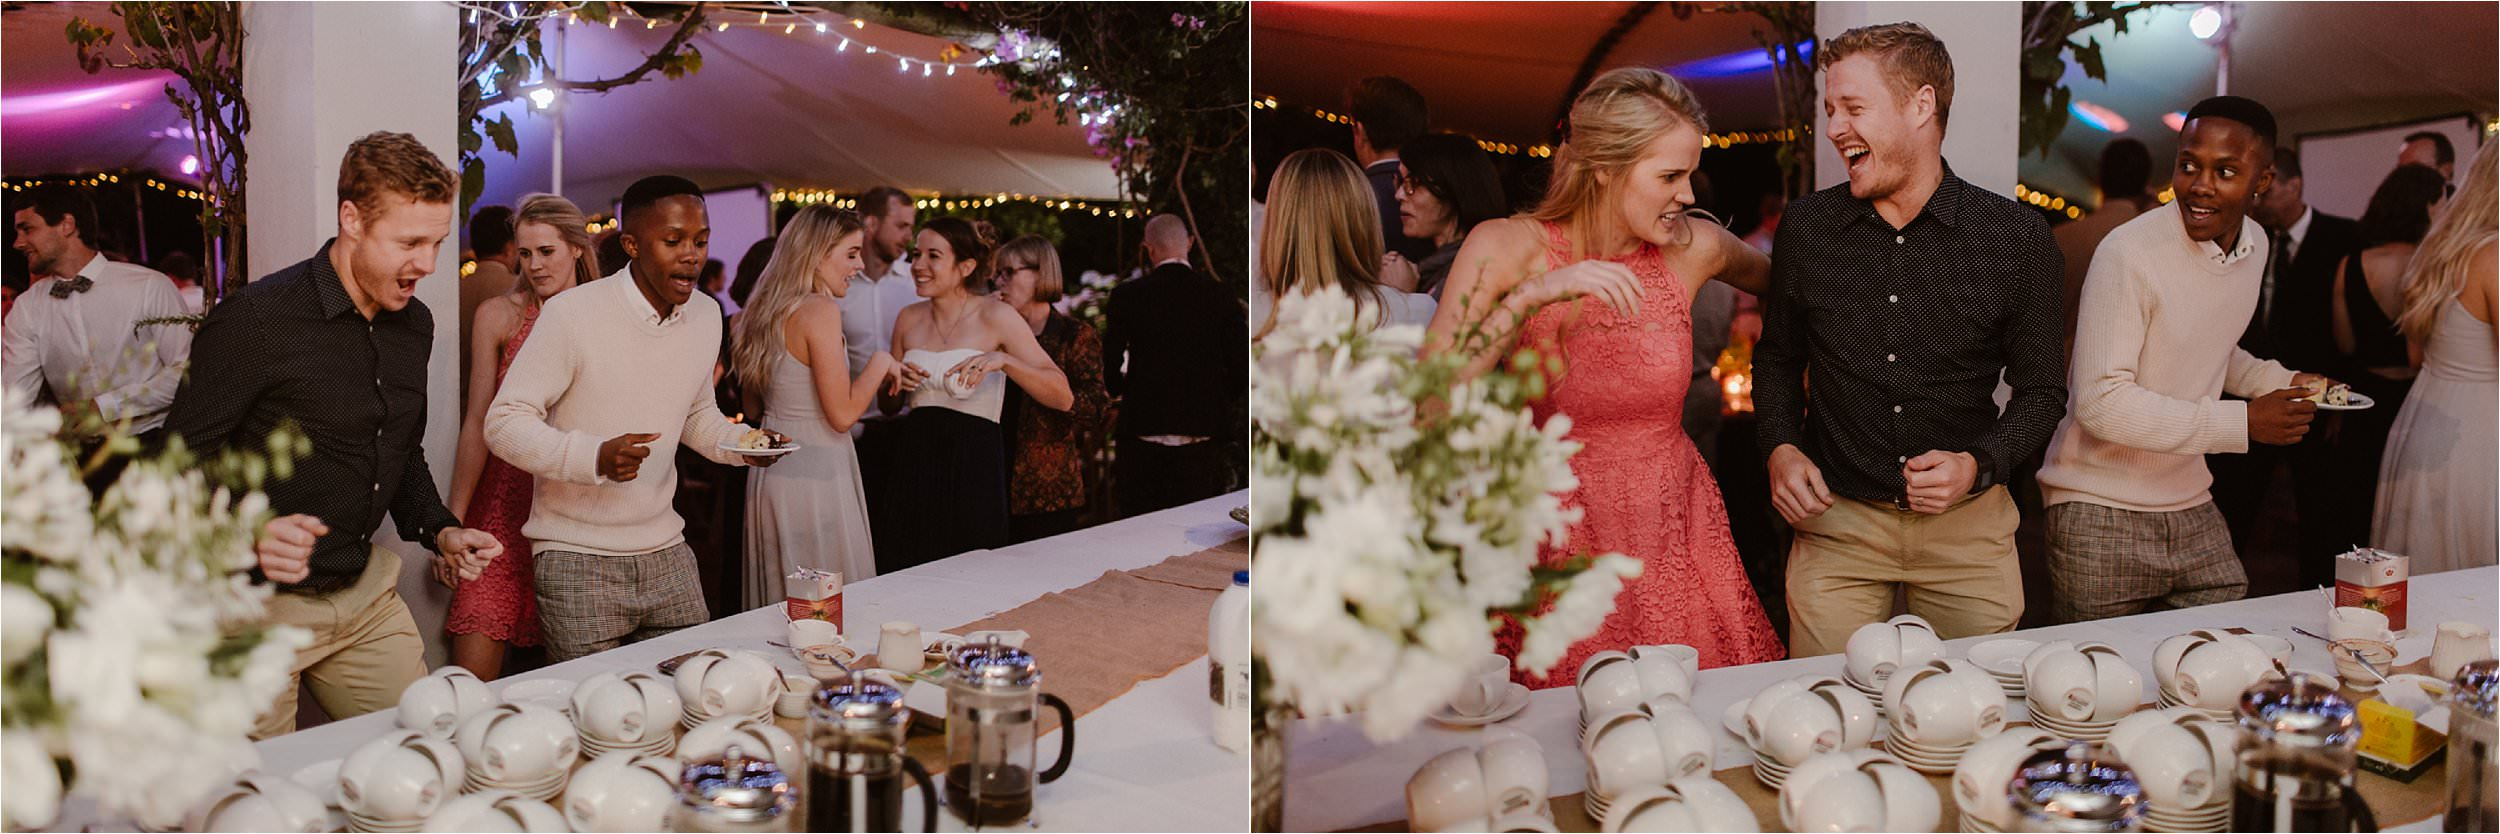 People dancing at the food table at a wedding because the music is so good.